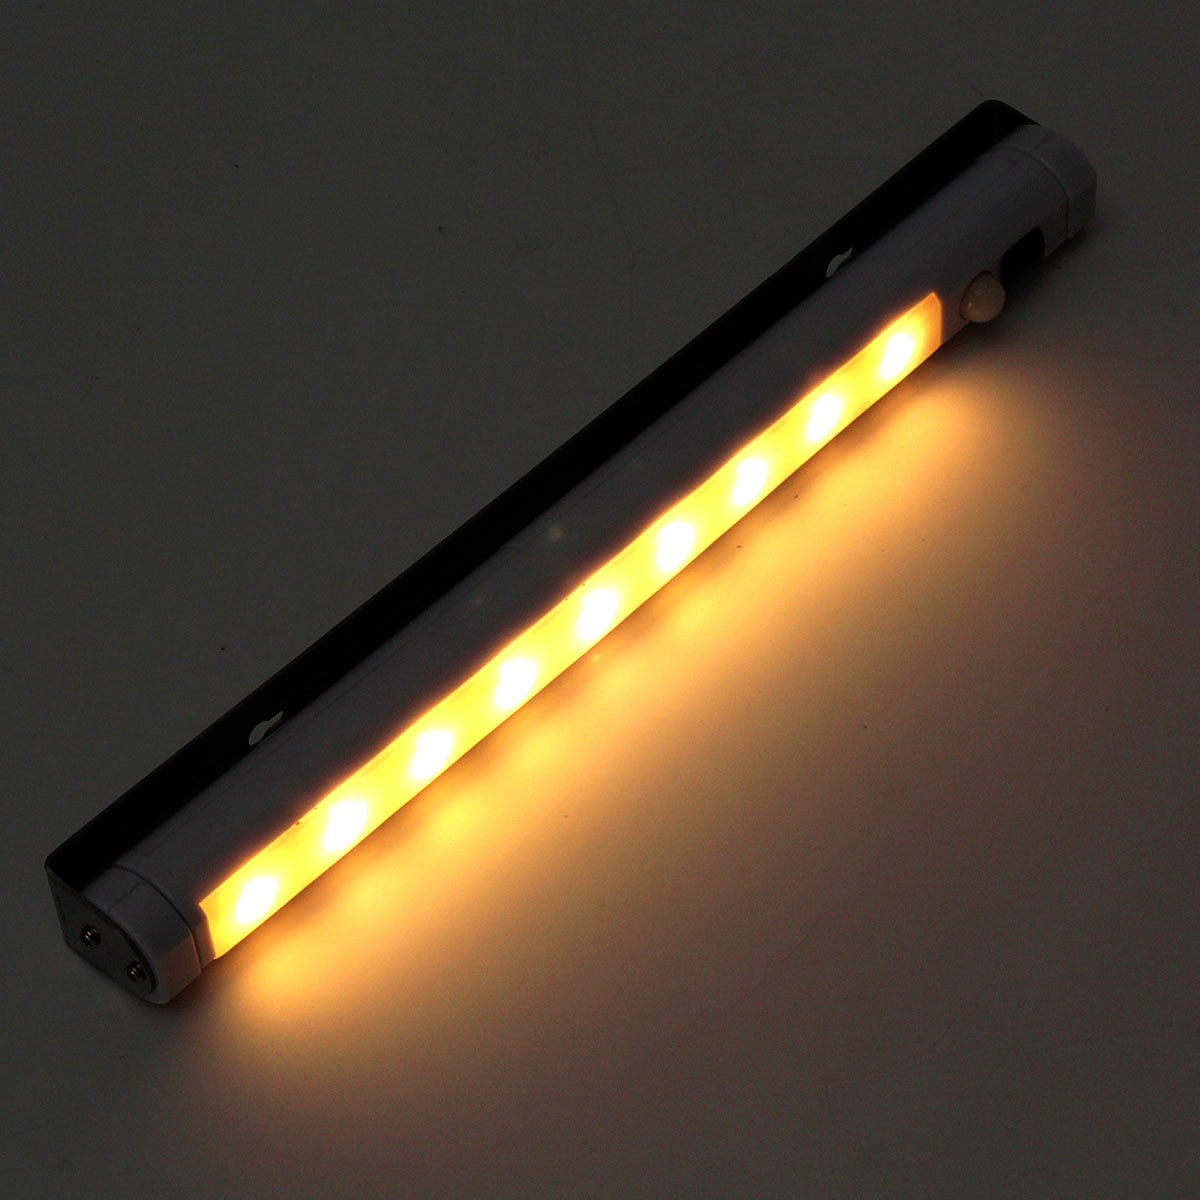 Bright 9 LED Battery Auto Human Body Motion Sensor Night Light Lamp Activated Wall Light